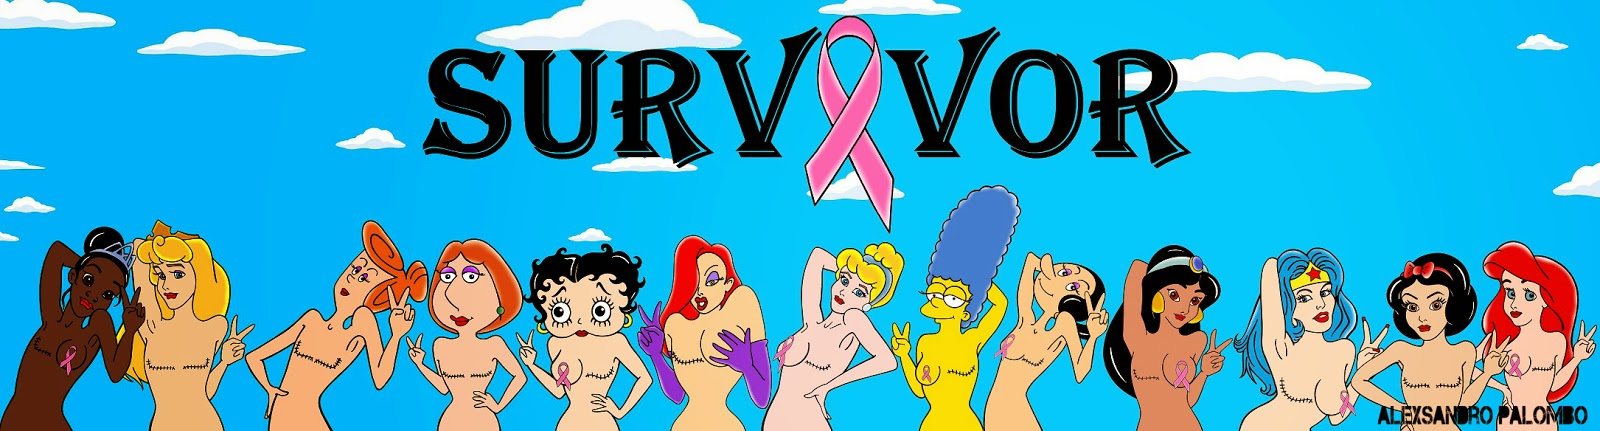 SURVIVOR Breast Art Campaign Iconic The  Simpsons Wilma Flintstone Marge Lois Griffin Wonder Woman Cinderella Aurora Snow White